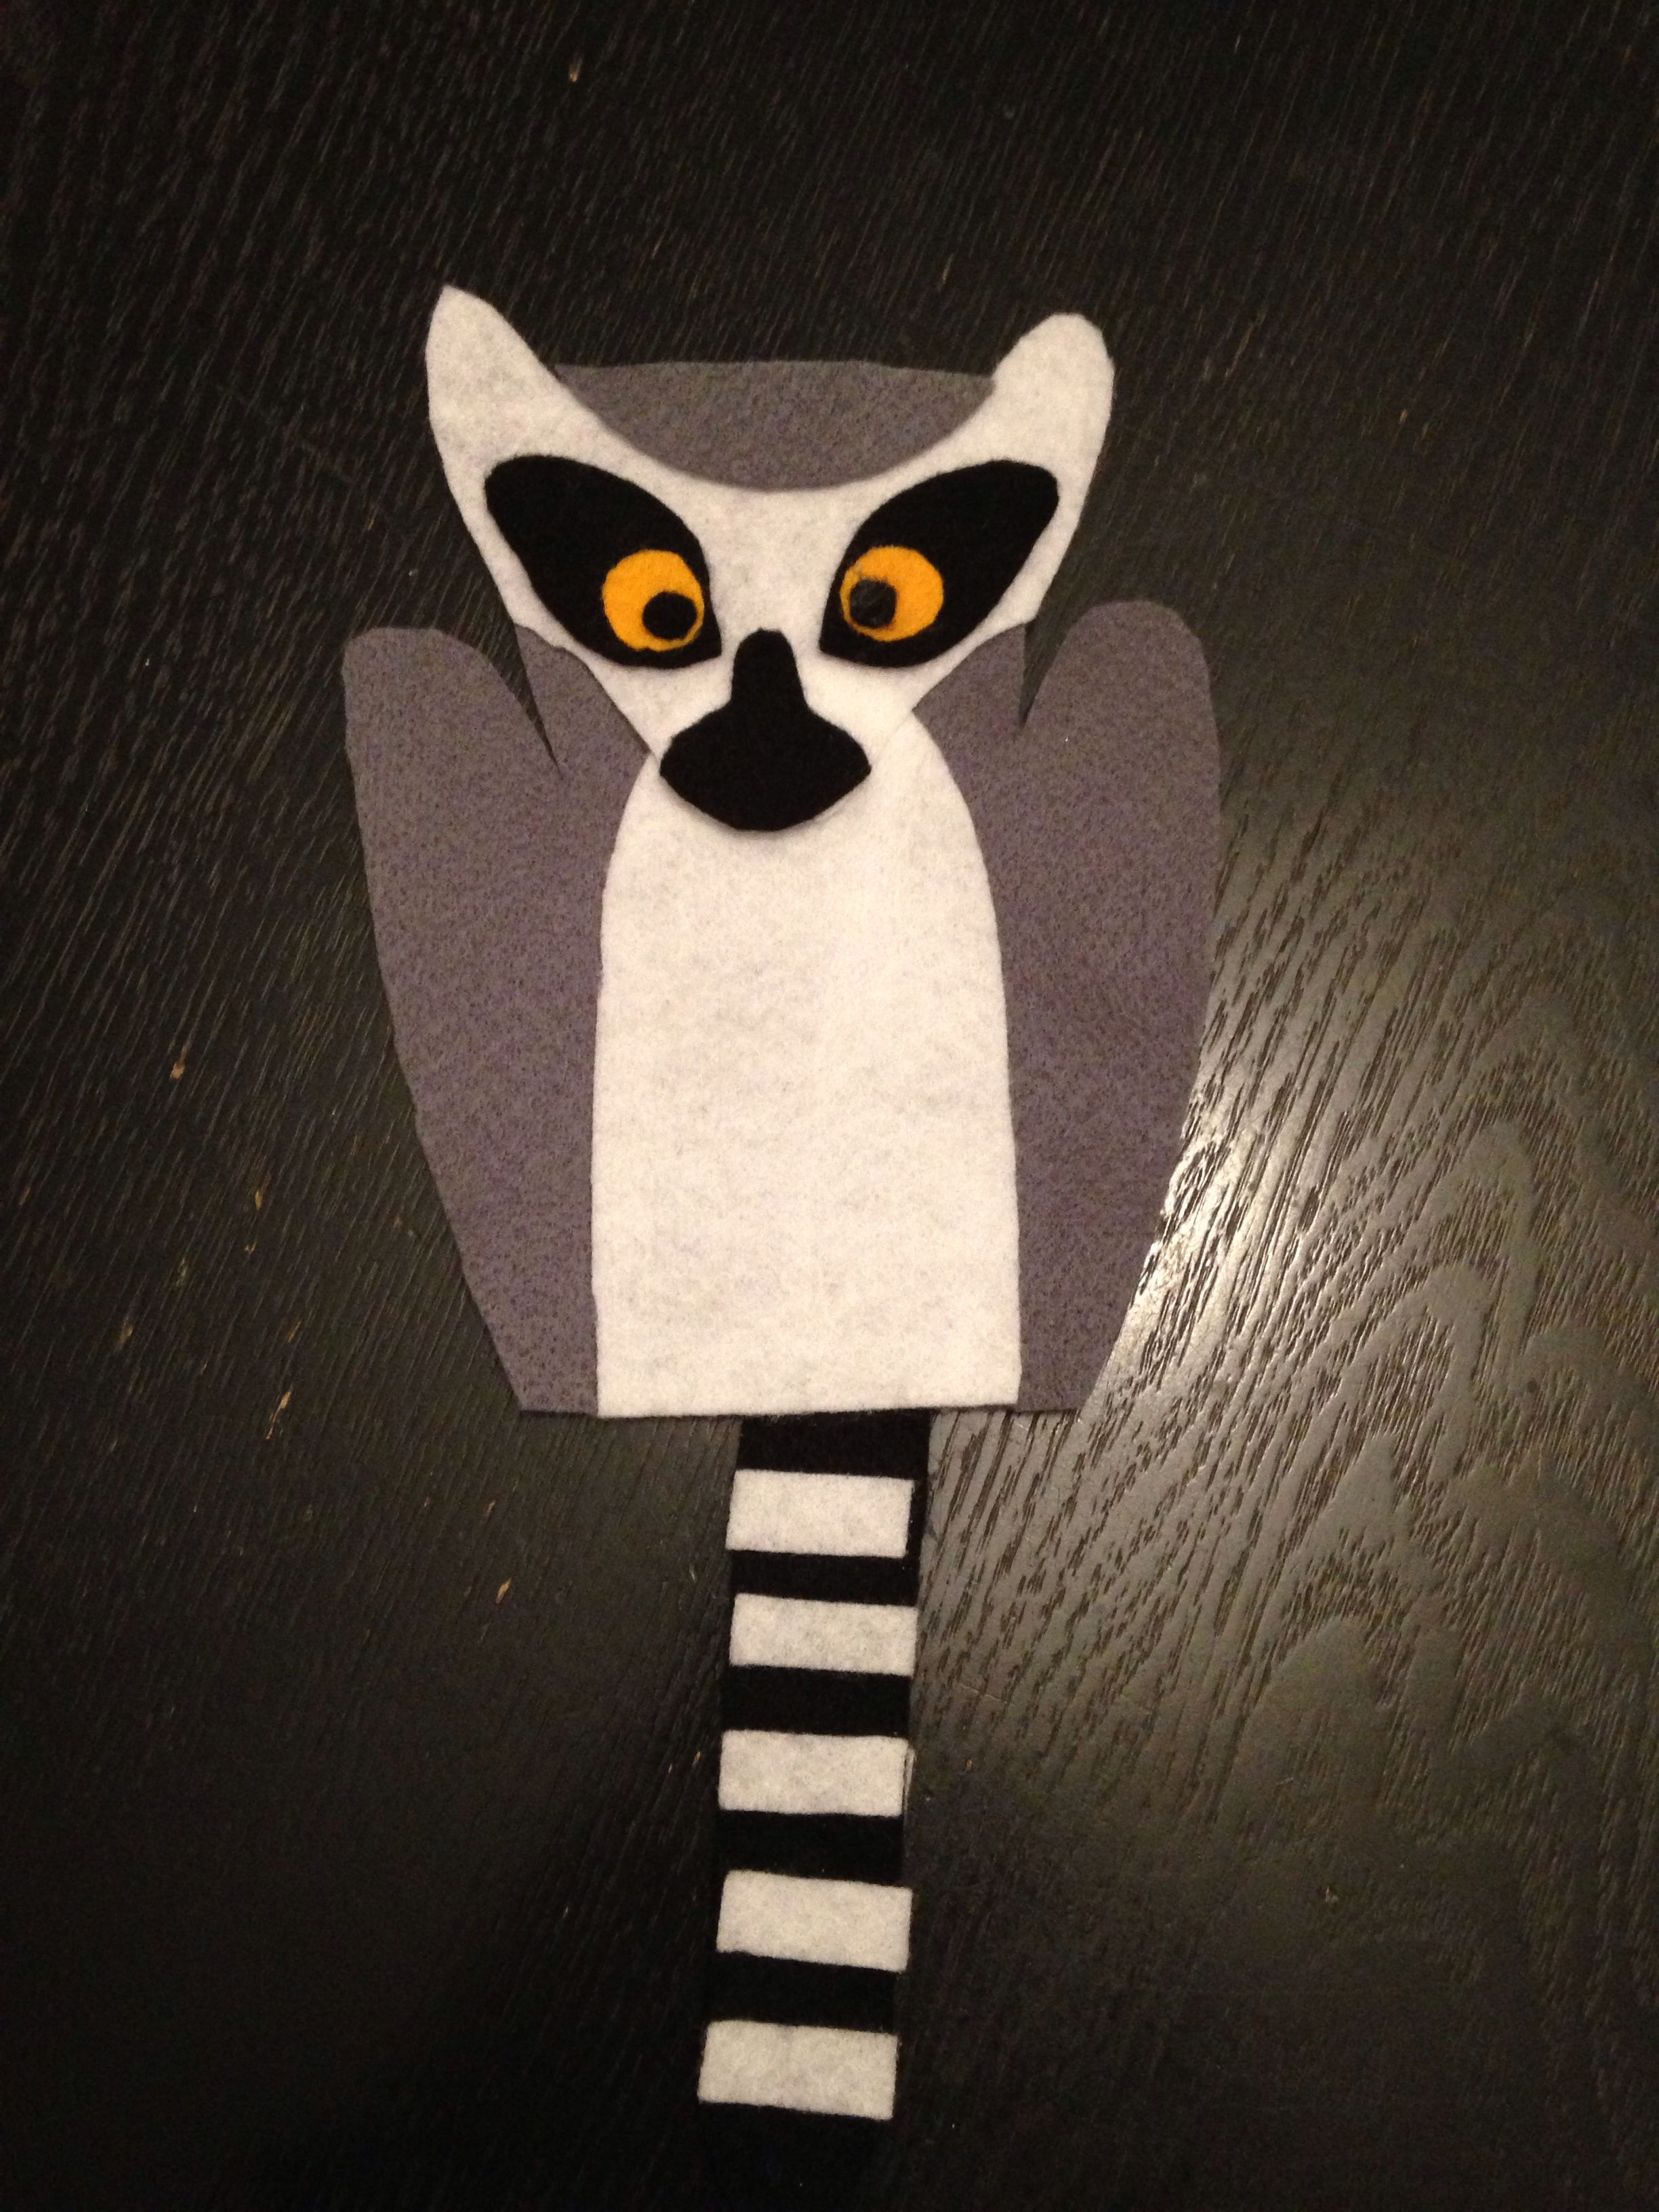 Finished Lemur